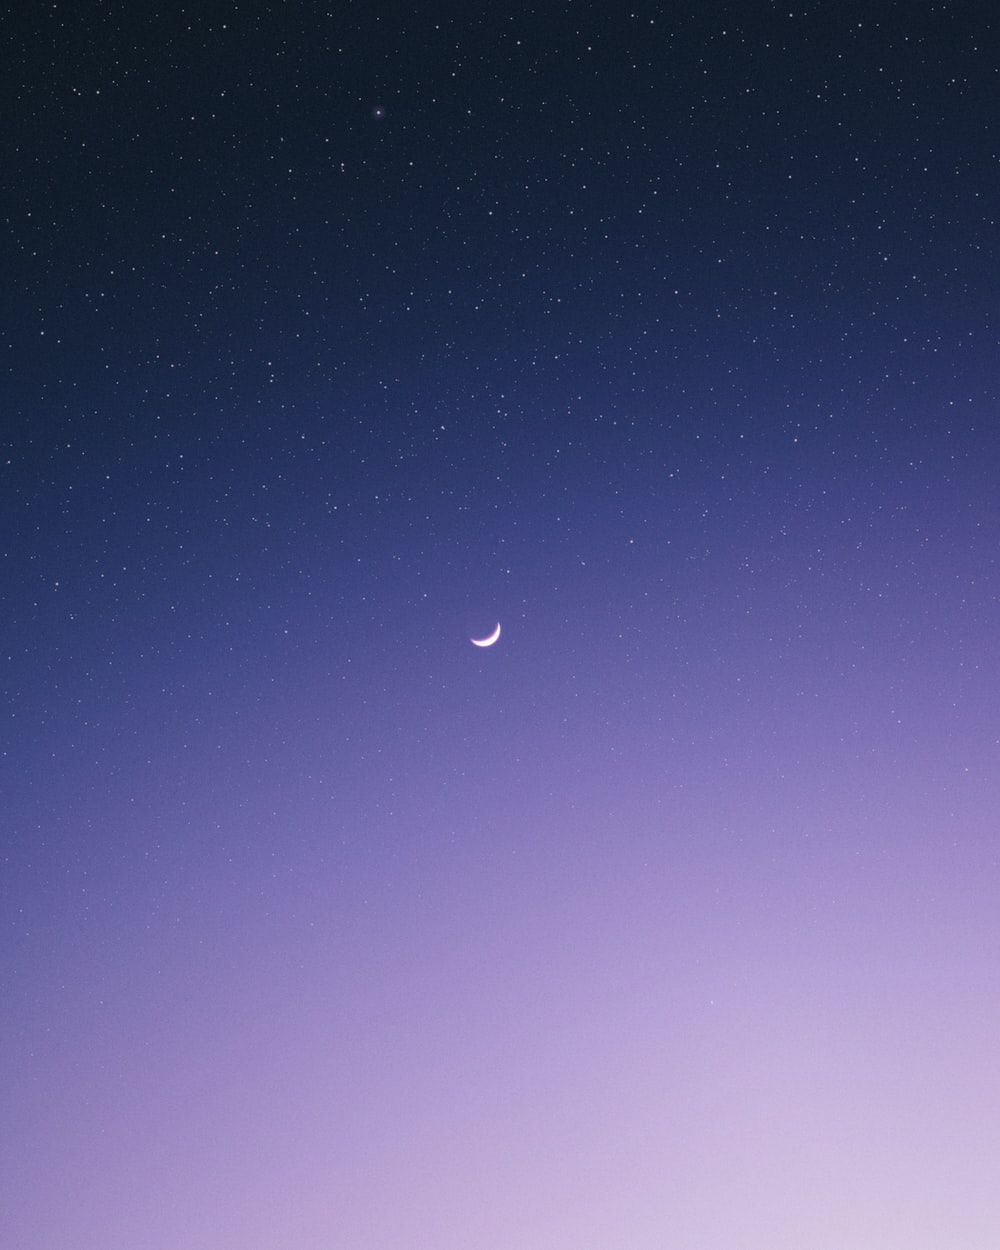 crescent moon surrounded by stars during night time